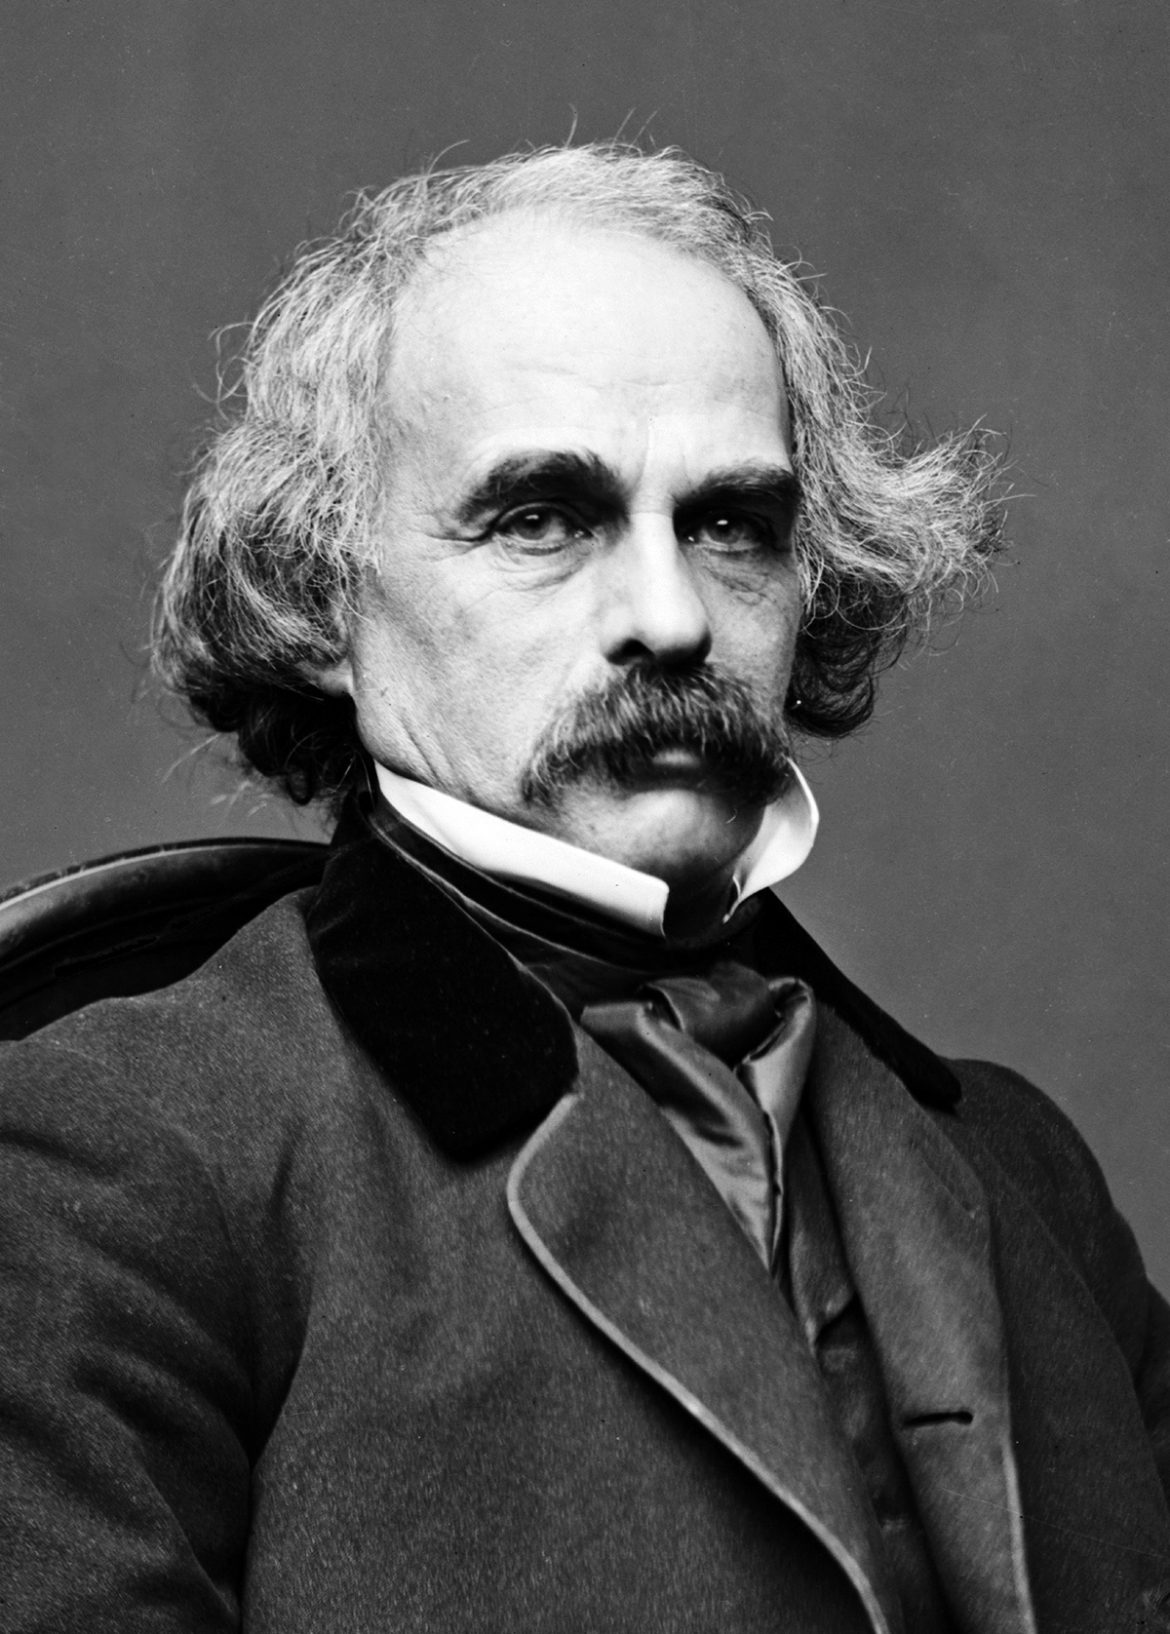 an analysis of young goodman brown a short story by nathaniel hawthorne Home → sparknotes → short story study guides → young goodman brown young goodman brown nathaniel hawthorne table of contents how to write literary analysis.